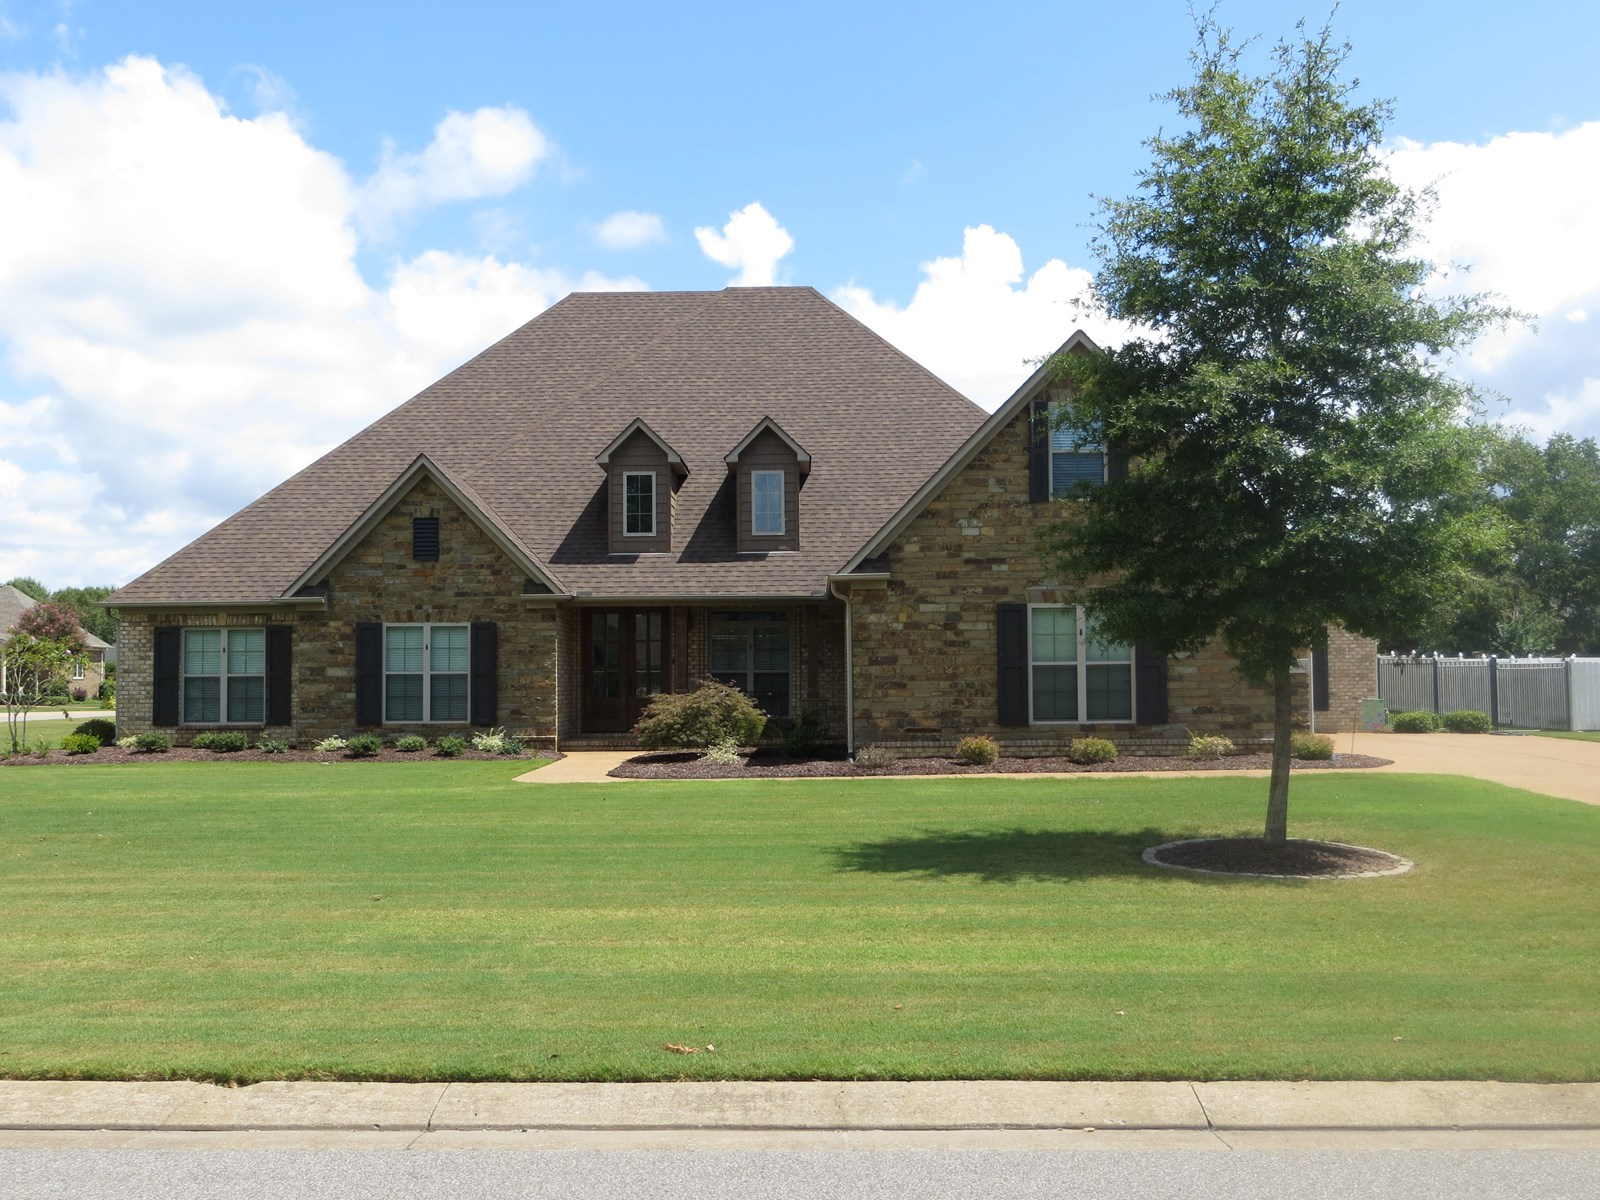 5 BR 4 1/2 BA Brick Home with a Pool  in Jackson Tn